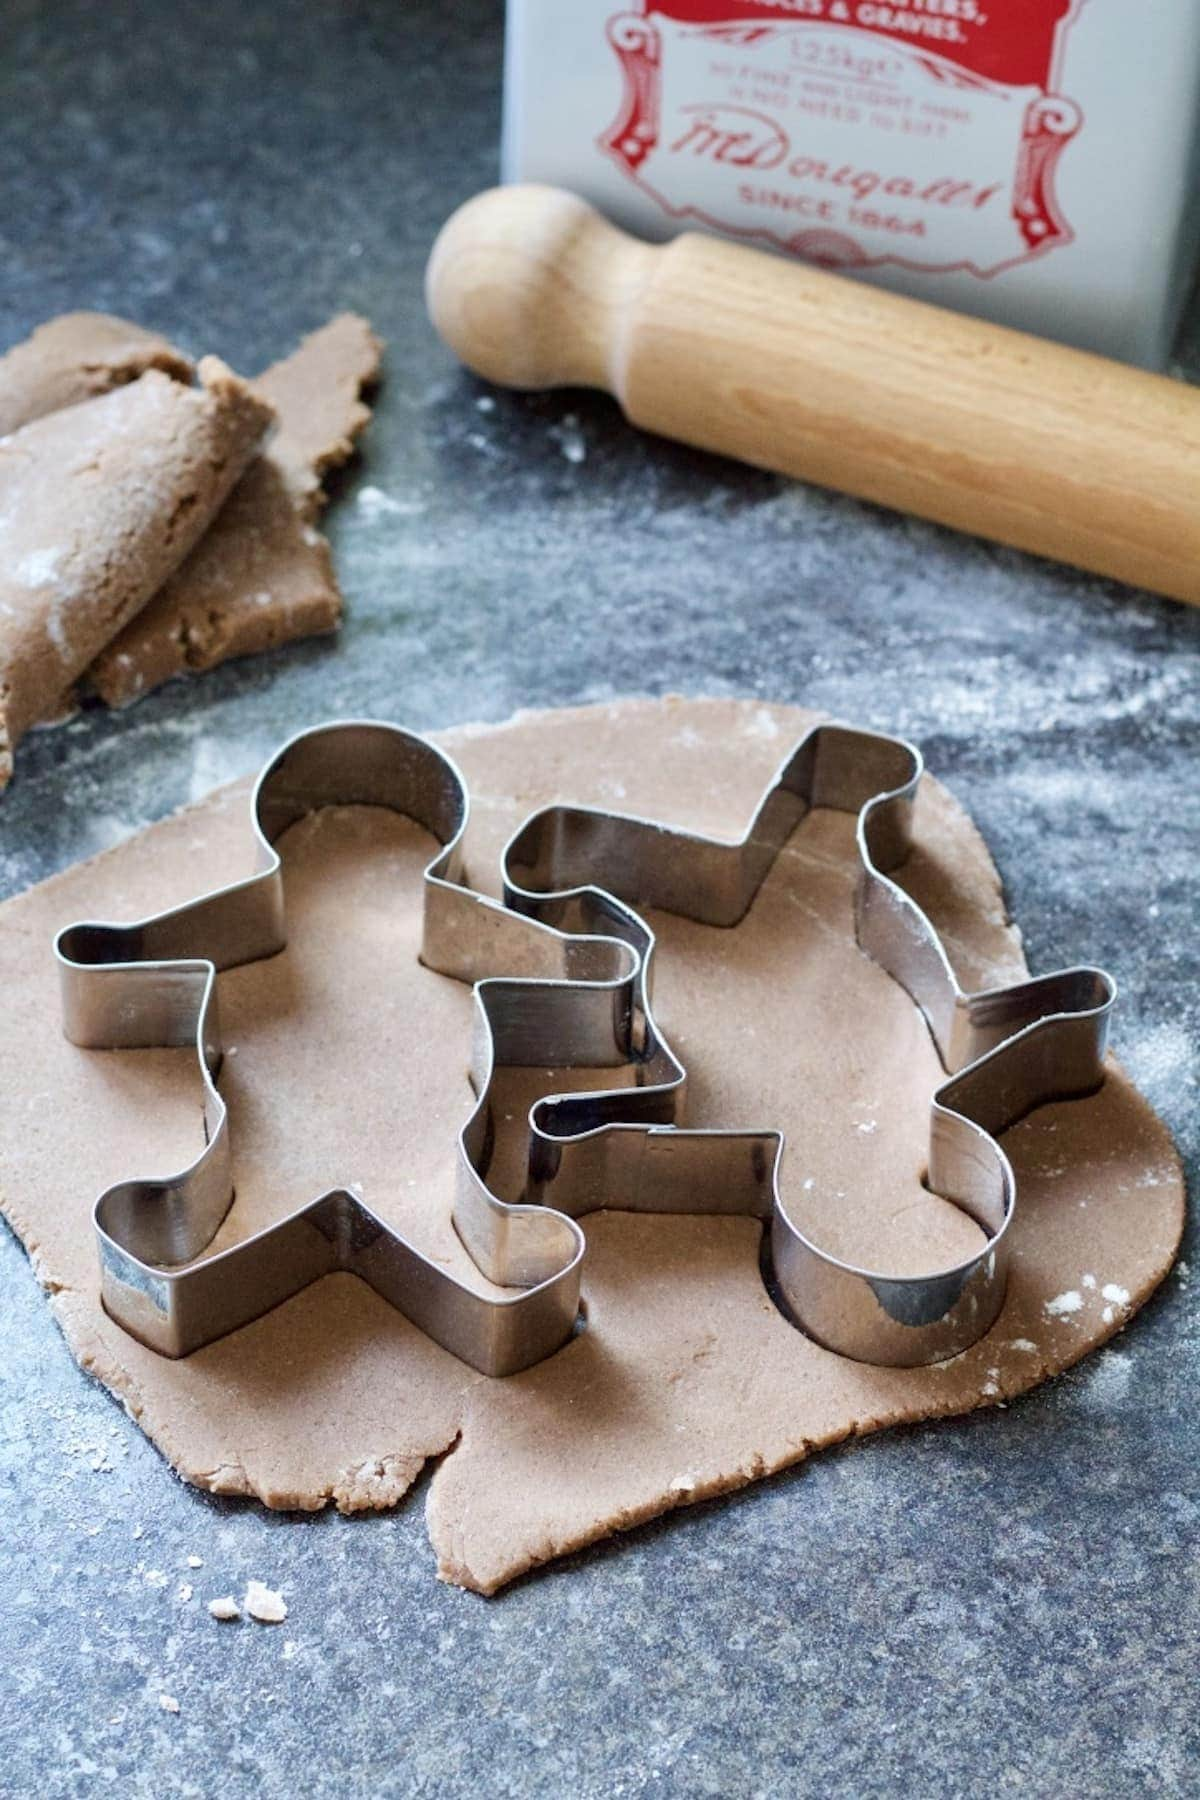 Two gingerbread men cutters on top of rolled out dough.